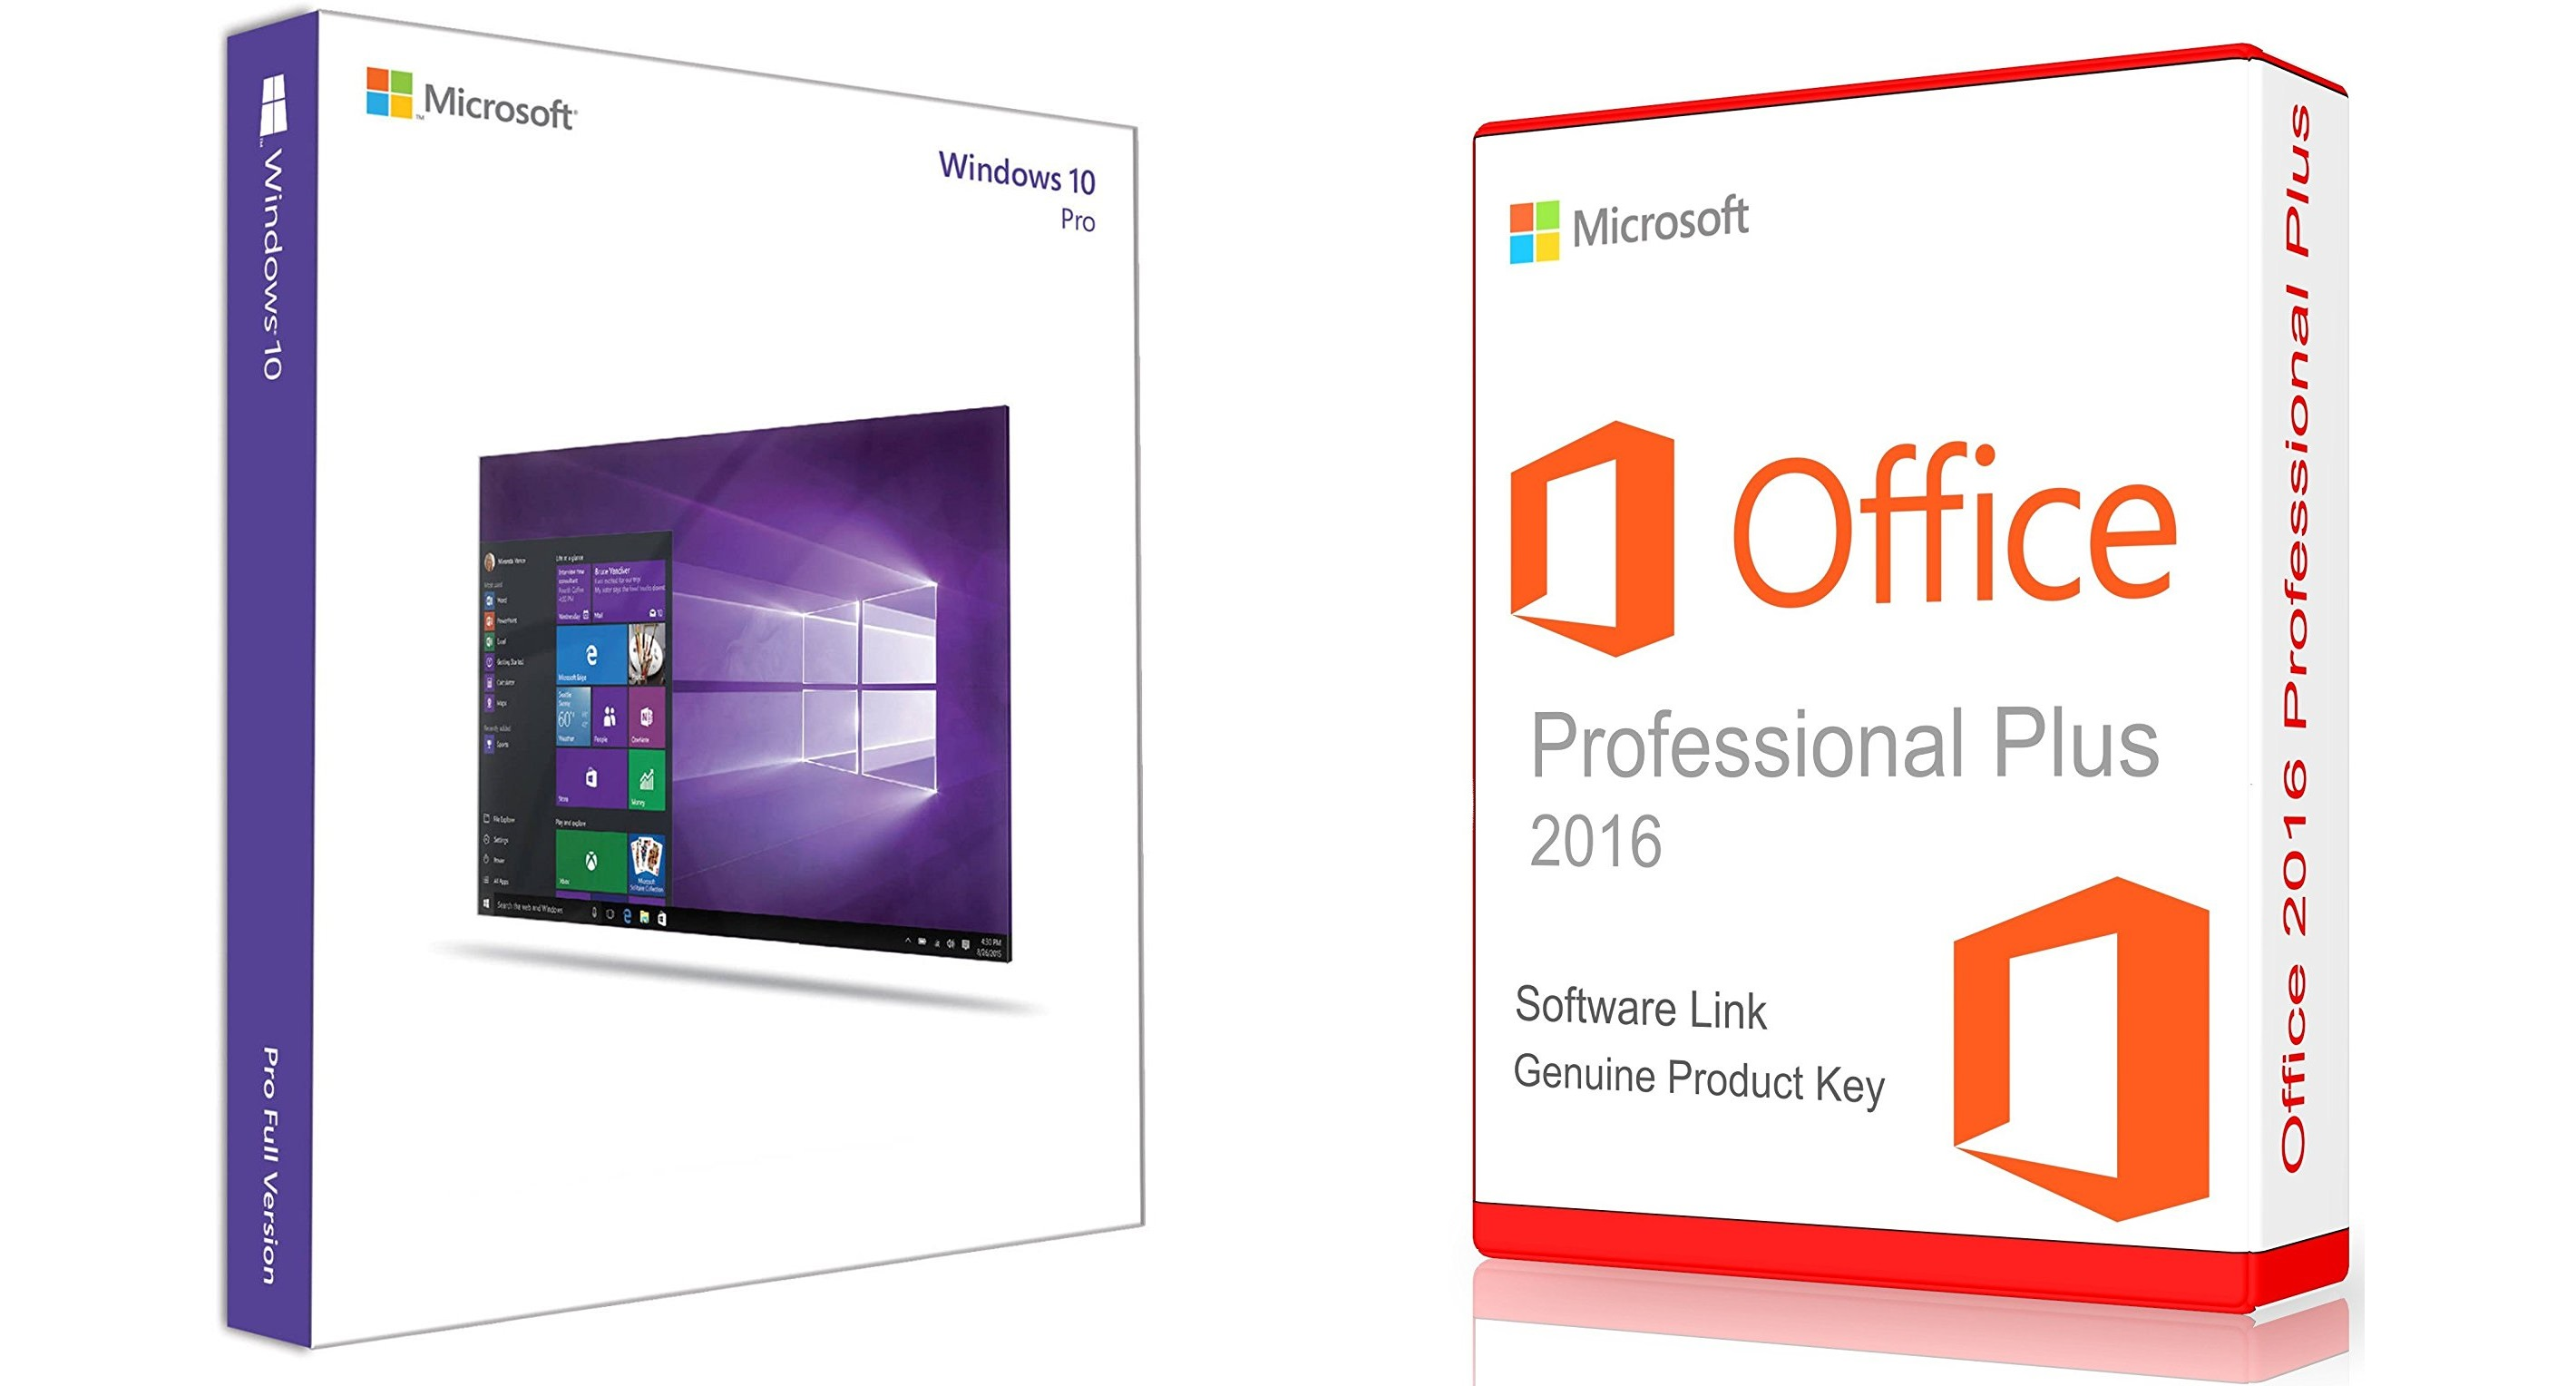 Licenze di windows 10 pro e office 2016 plus in offerta da for La licenza di windows sta per scadere